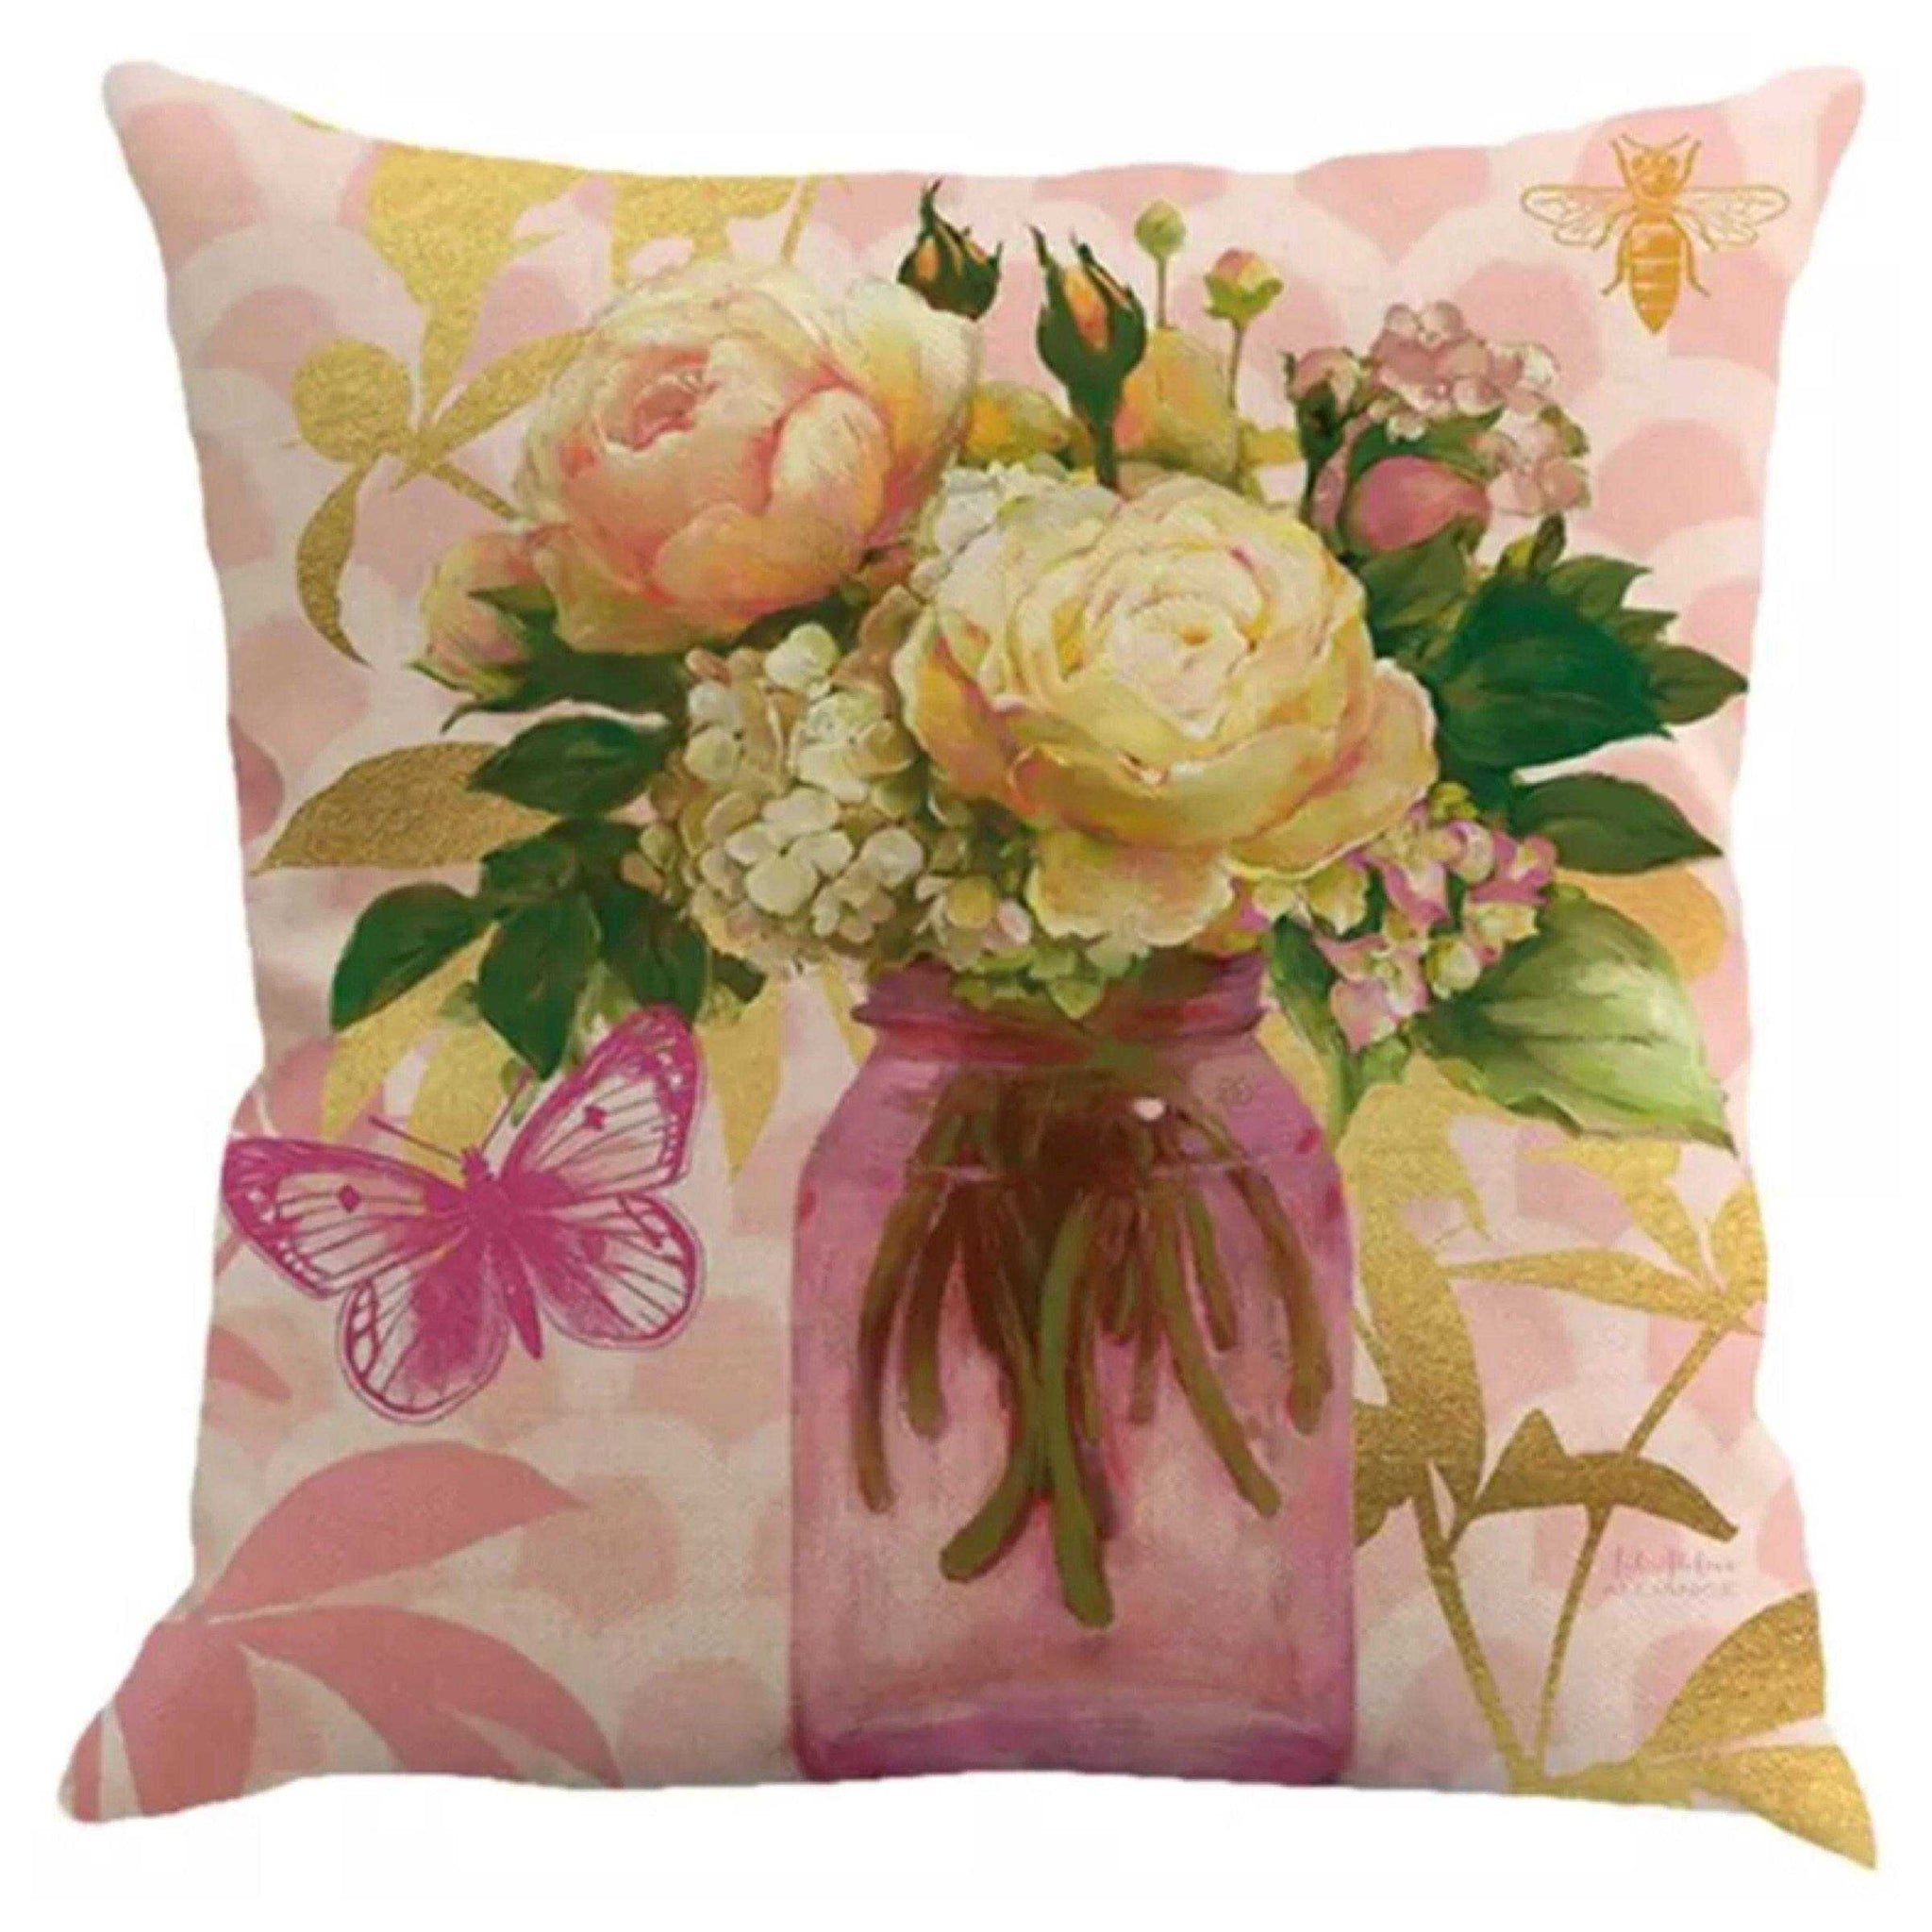 Cushion Pillow Pink Floral with Bee & Butterfly - The Renmy Store